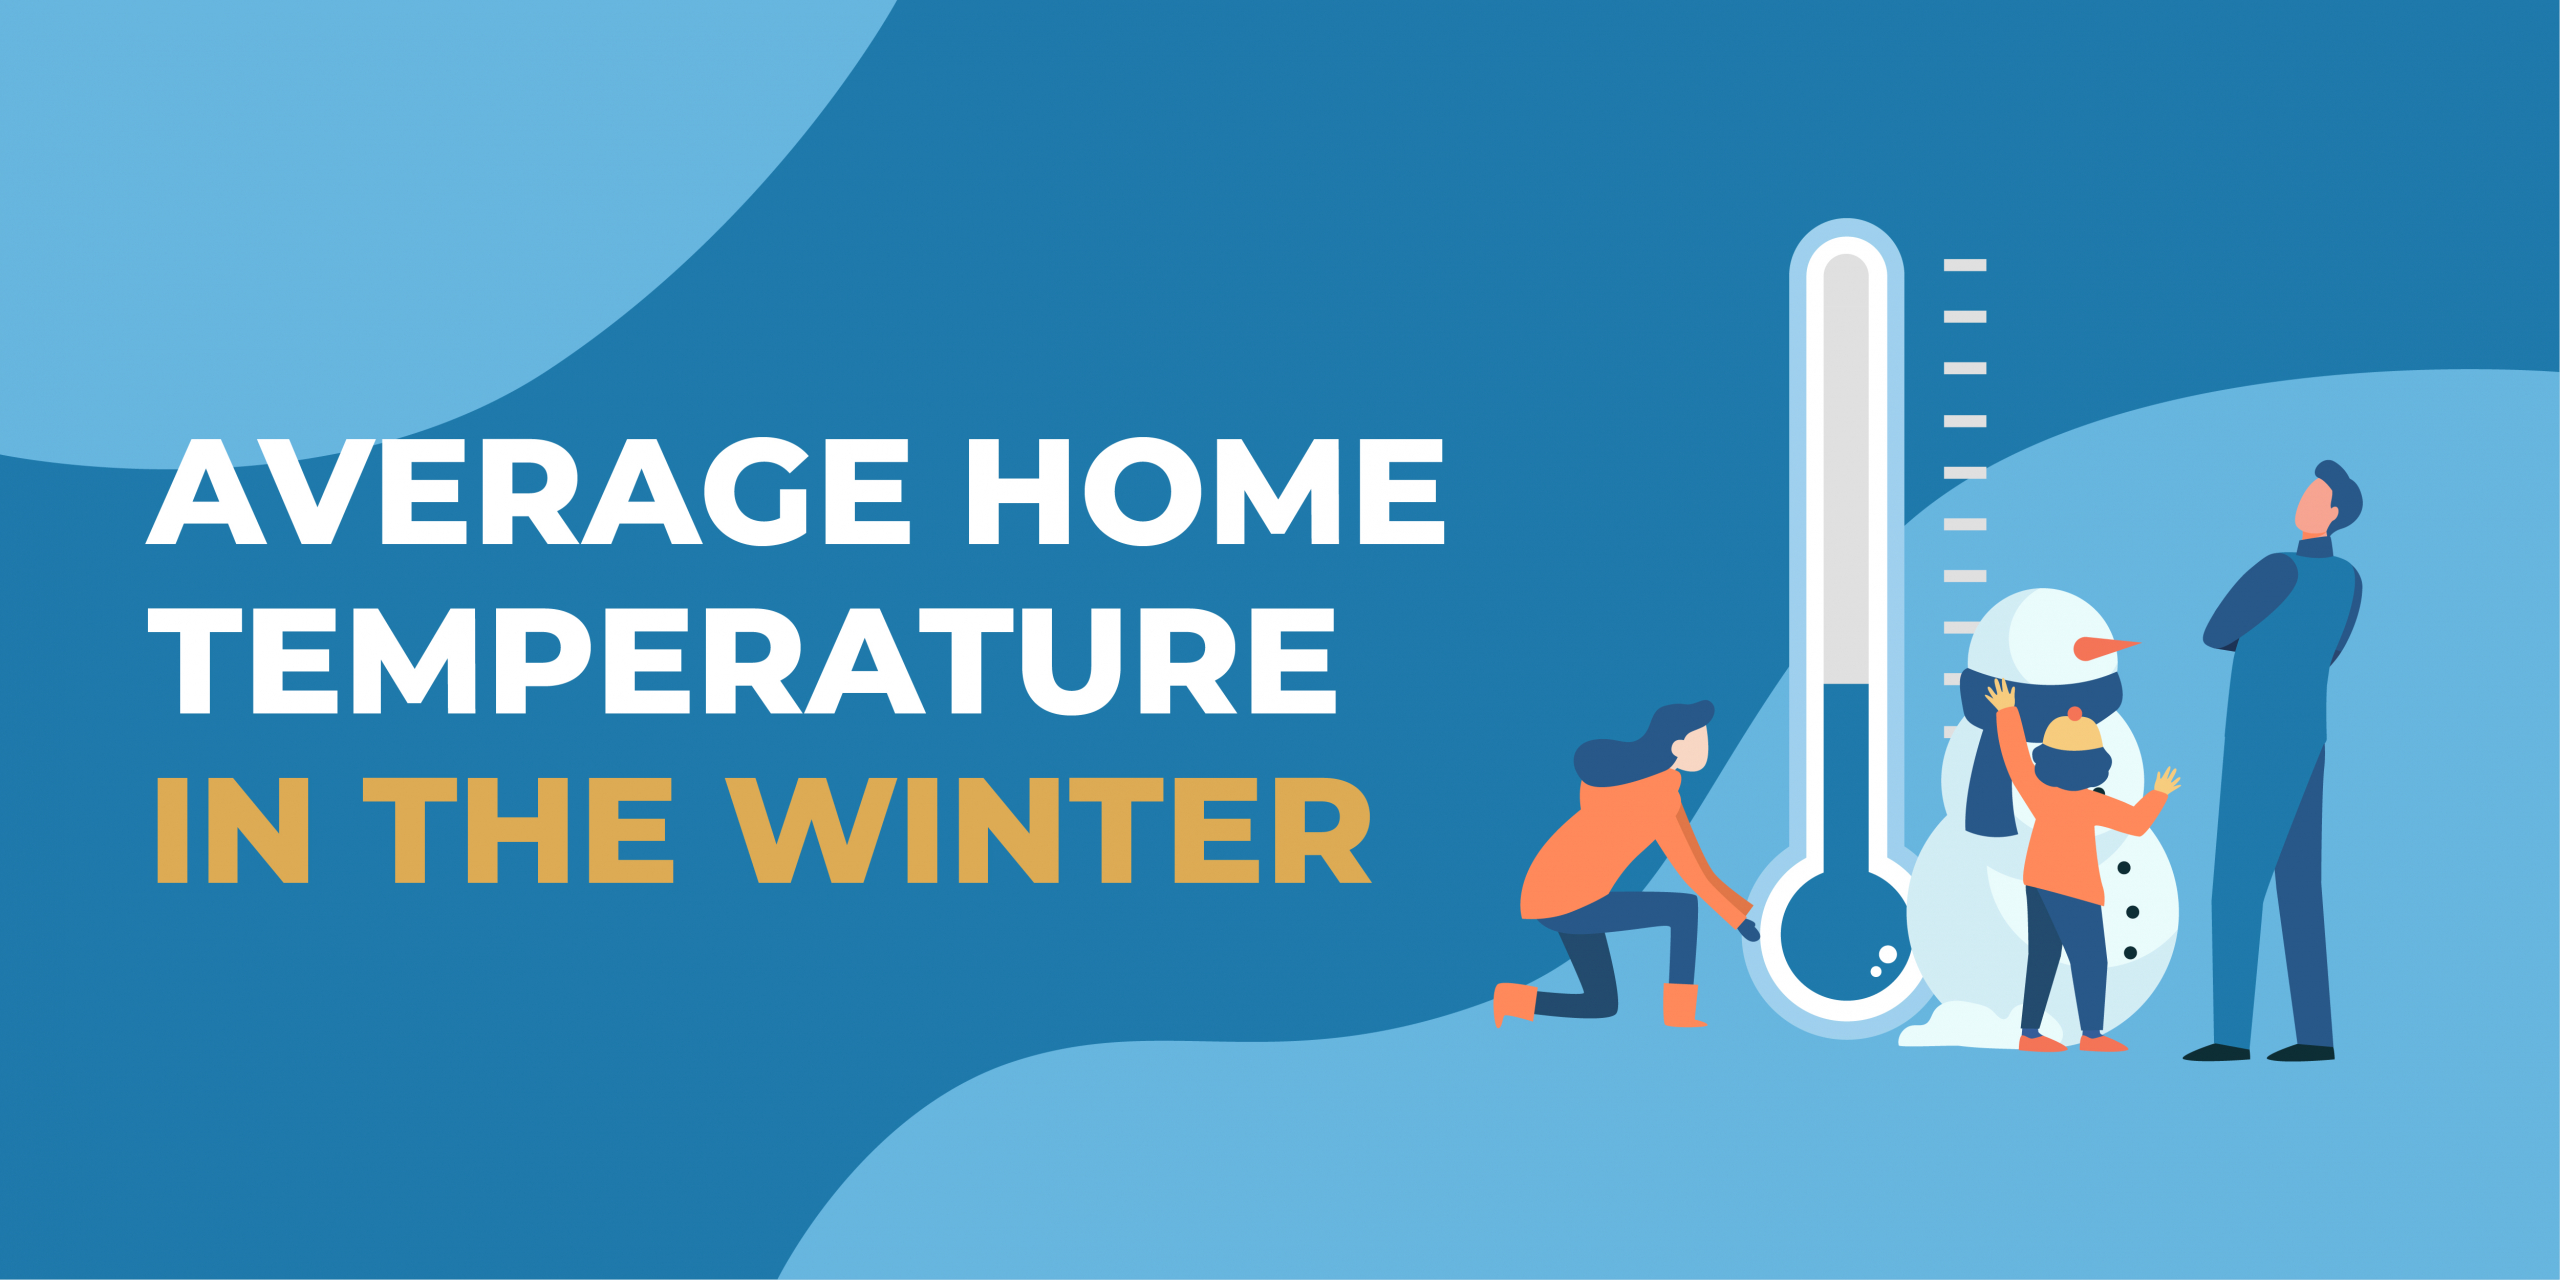 Average Home Temperature in Winter